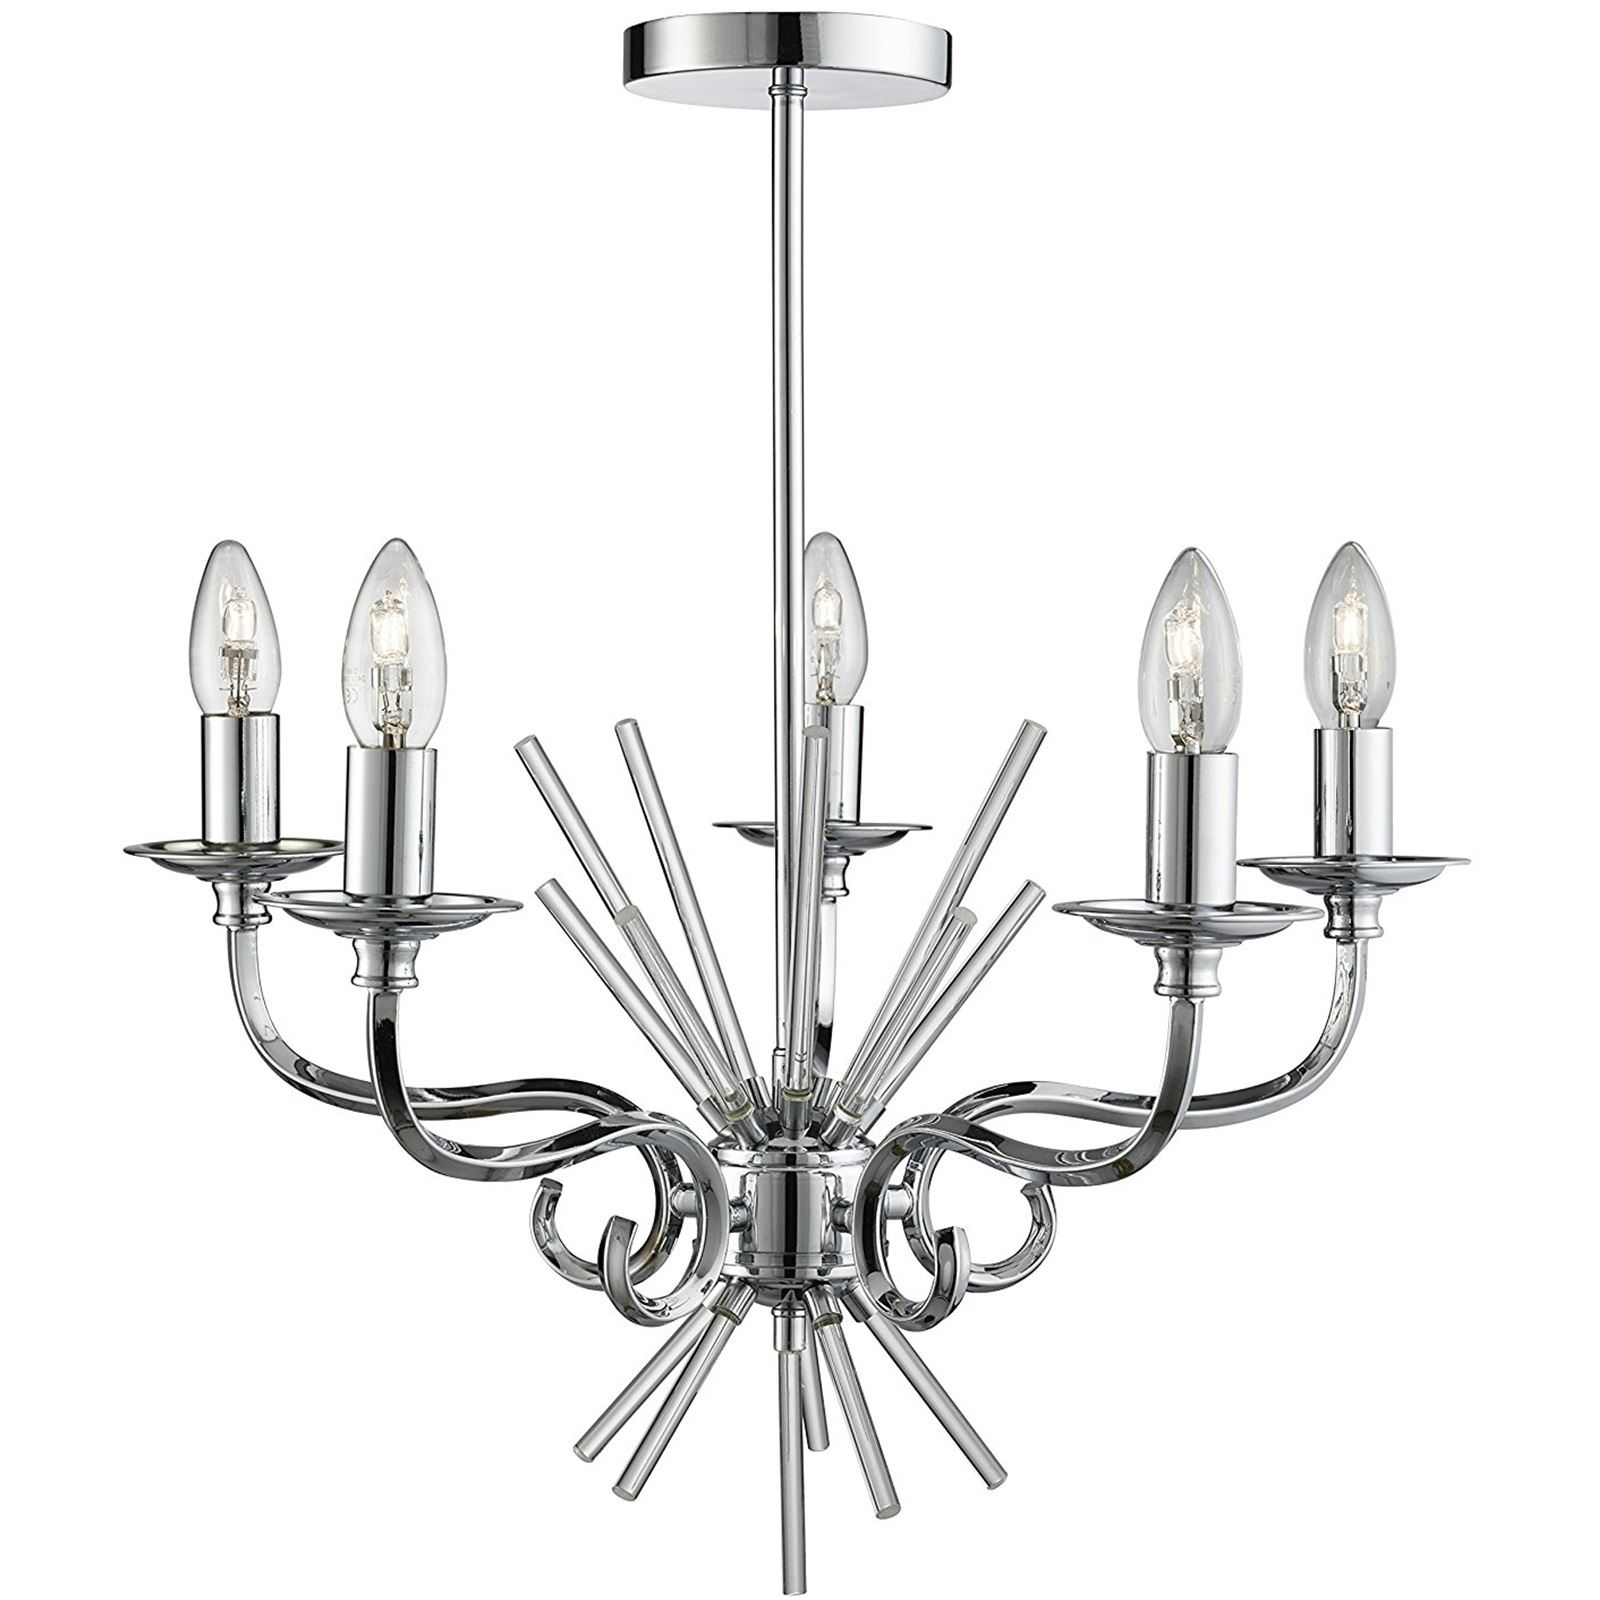 Lighting Collection Chrome Chandelier Ceiling Light